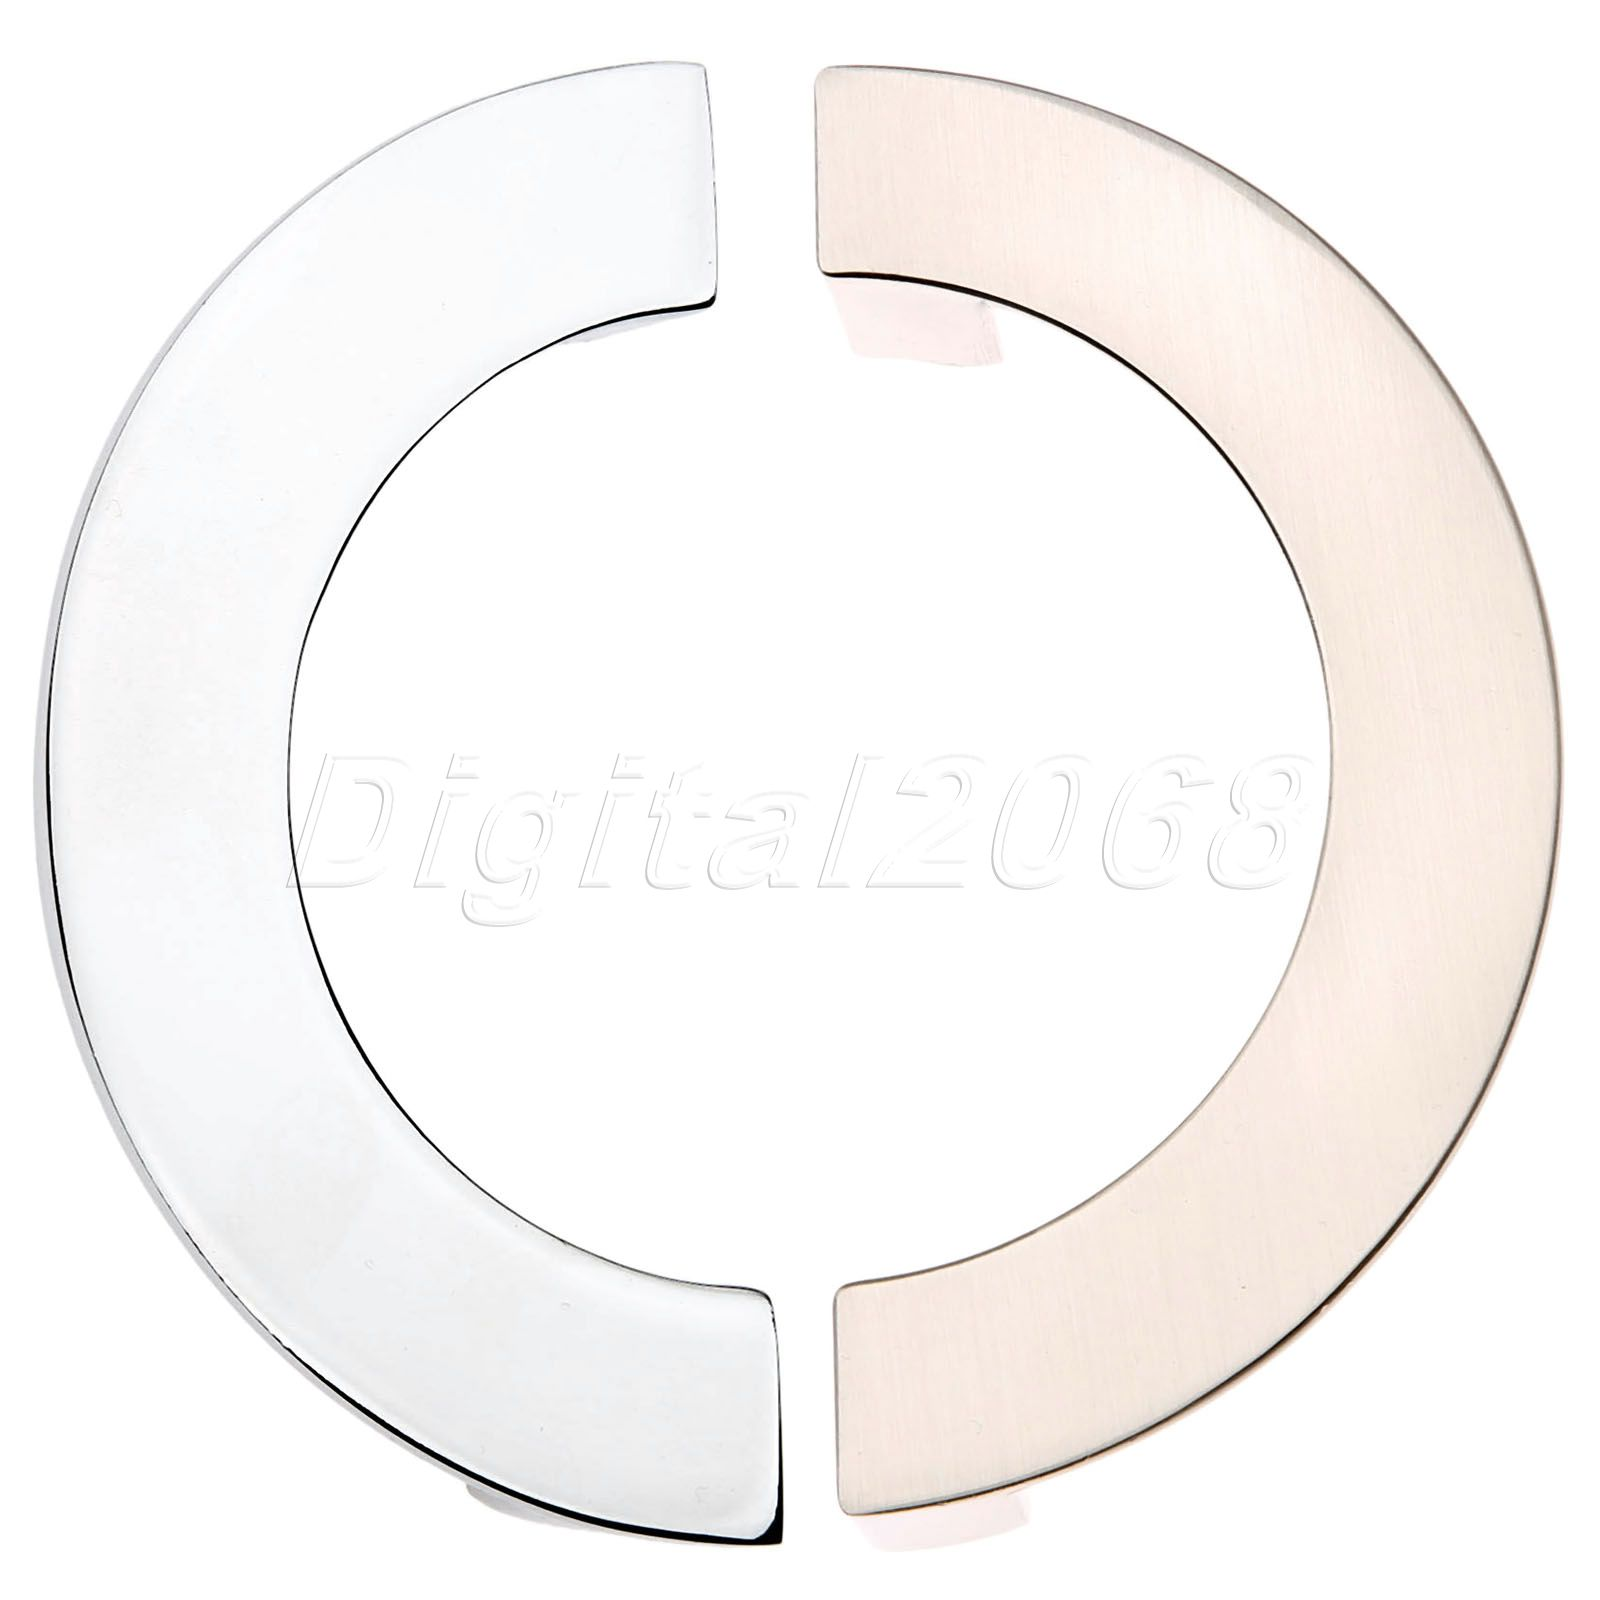 New High Quality Modern Semi-circular Cabinet Wardrobe Closet Drawer Knob Door Pull Handle Sliding Door Knob